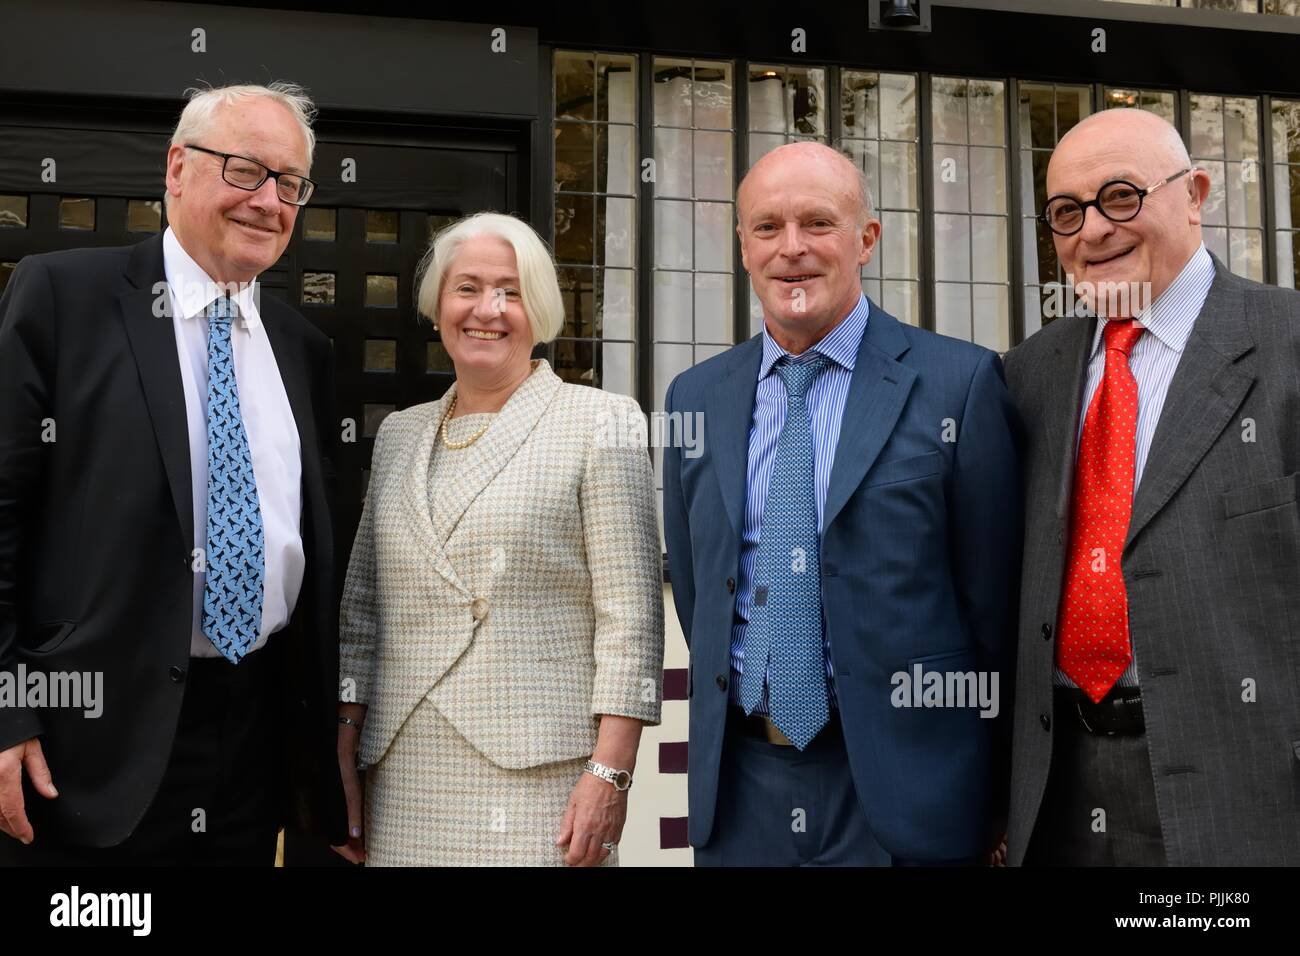 Glasgow, UK. 7th September, 2018. Sauchiehall Street Glasgow, Scotland, UK. Glasgow businesswoman Celia Sinclair and fellow investors after the Royal visit to the Willow tearooms today at which the Duke of Rothesay placed a wood carving in the restaurant designed by Charles Rennie Mackintosh. Stock Photo